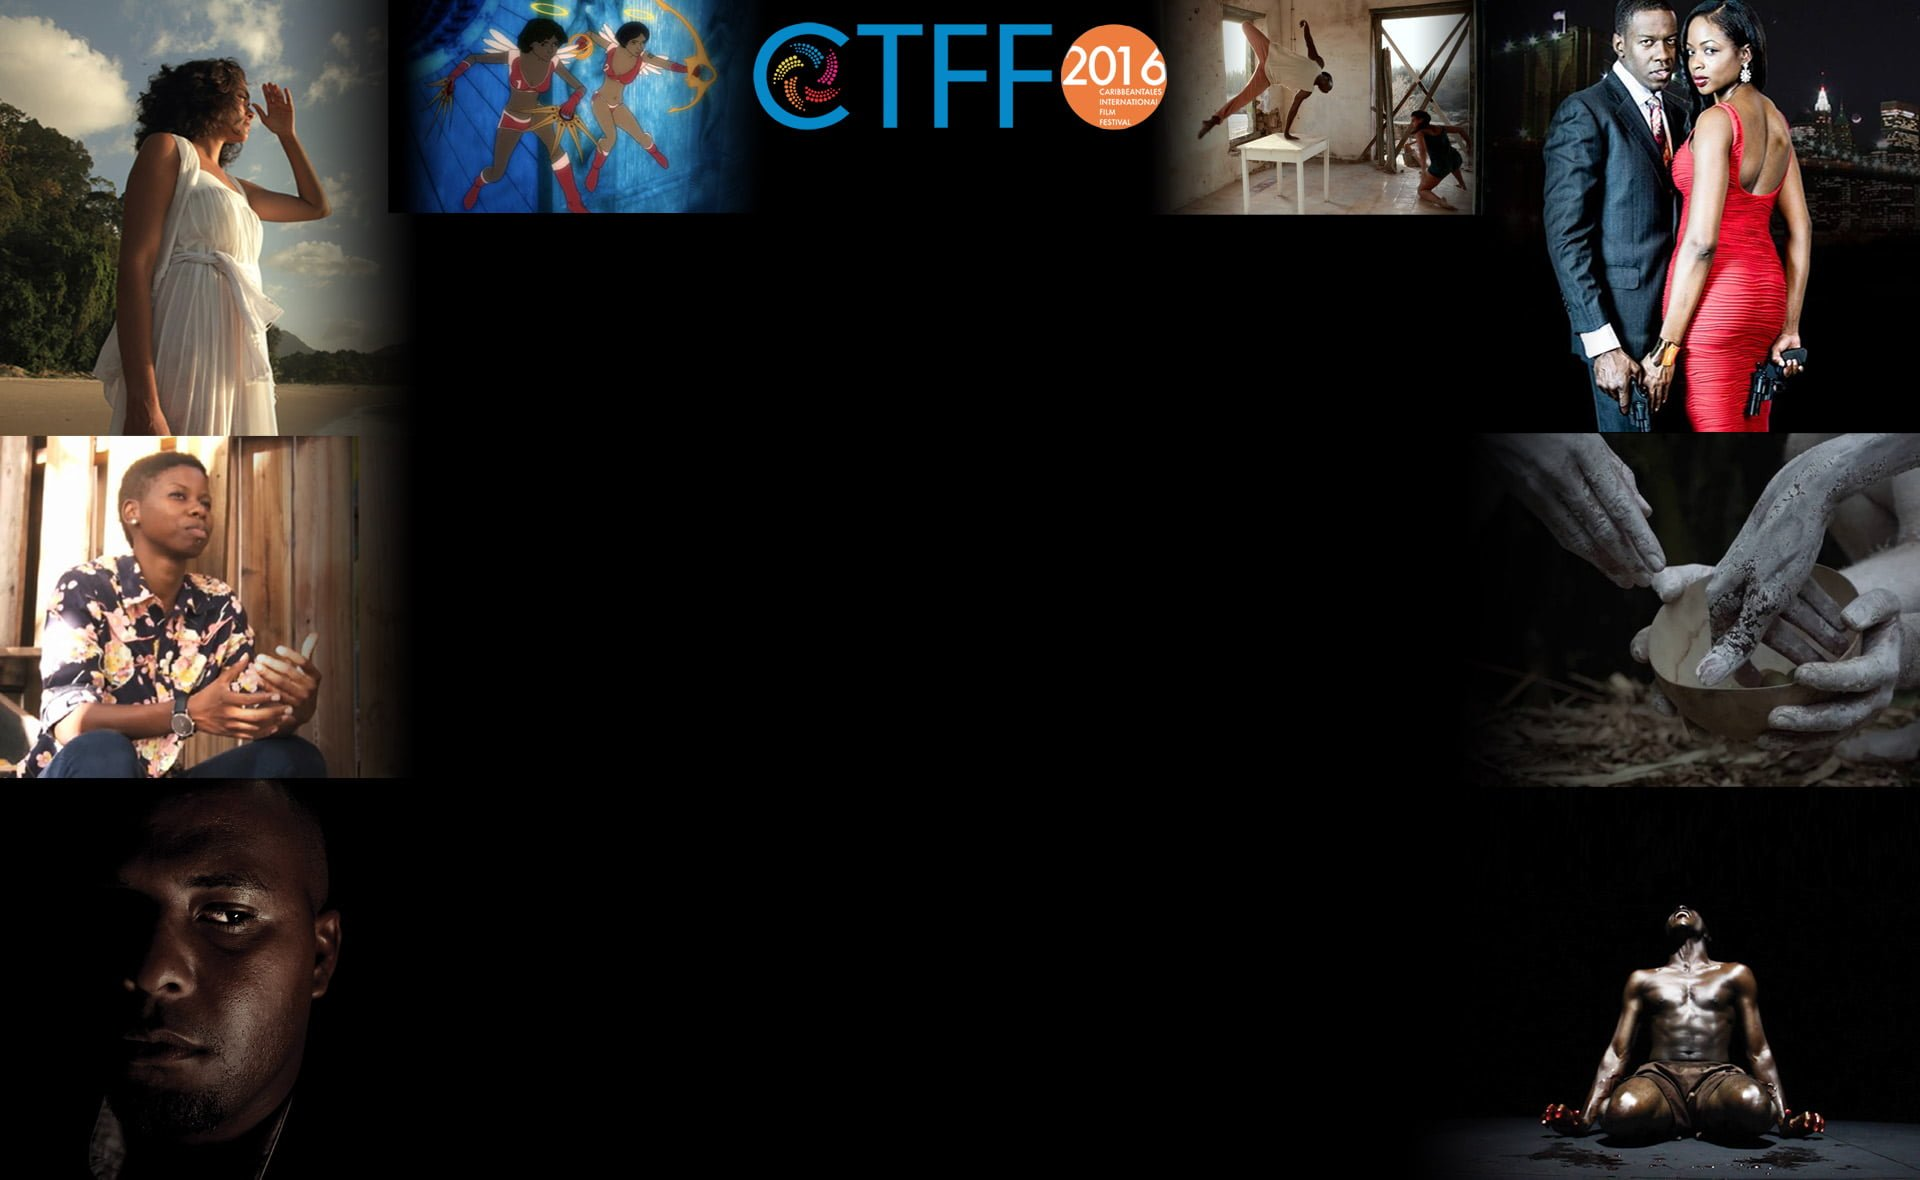 CTFF 2016 - background